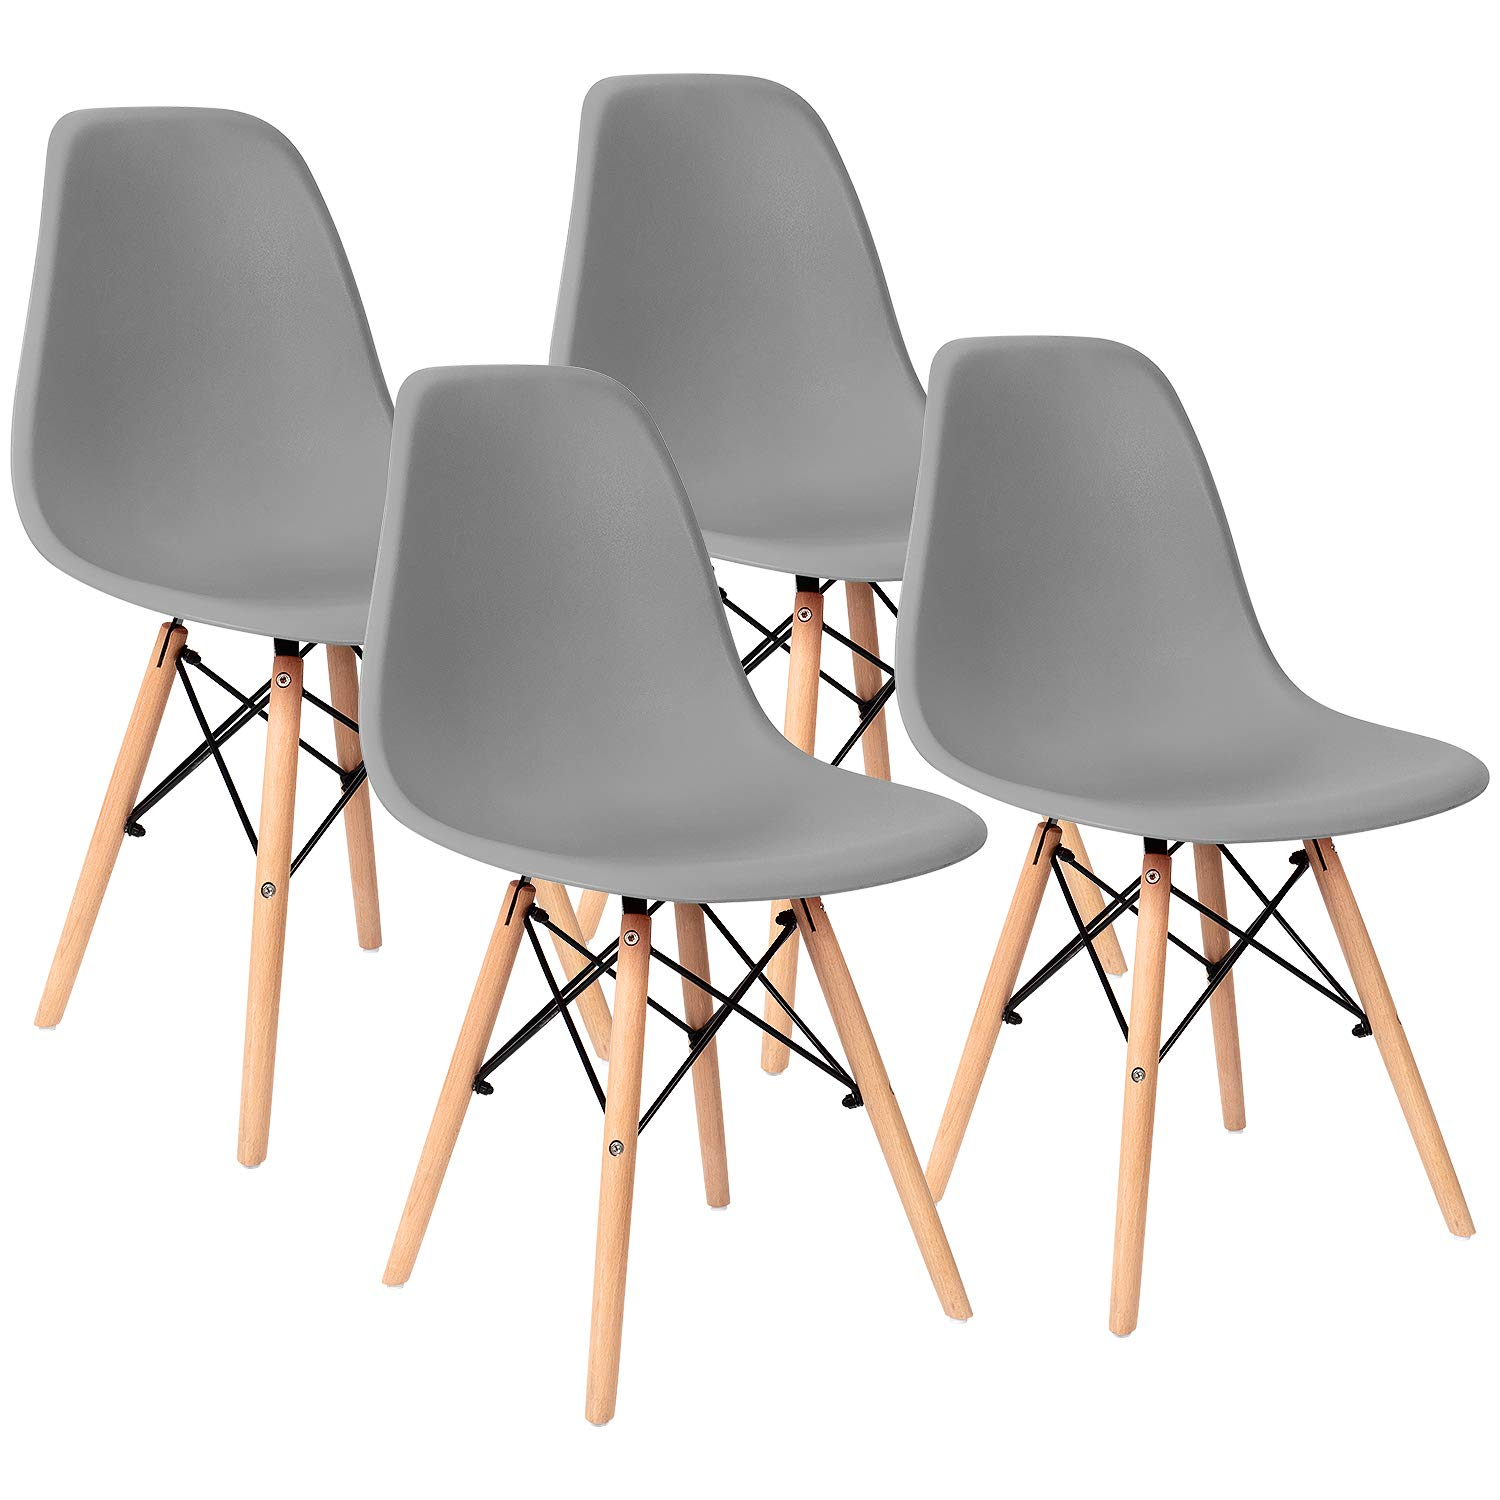 Pre Assembled Modern Style Dining Chairs Mid Century Eiffel DSW Side Chair Indoor Armless Plastic Shell Chairs for Dining Room, Kitchen, Living Room, Bedroom Set of 4 (Gray) by Furniwell